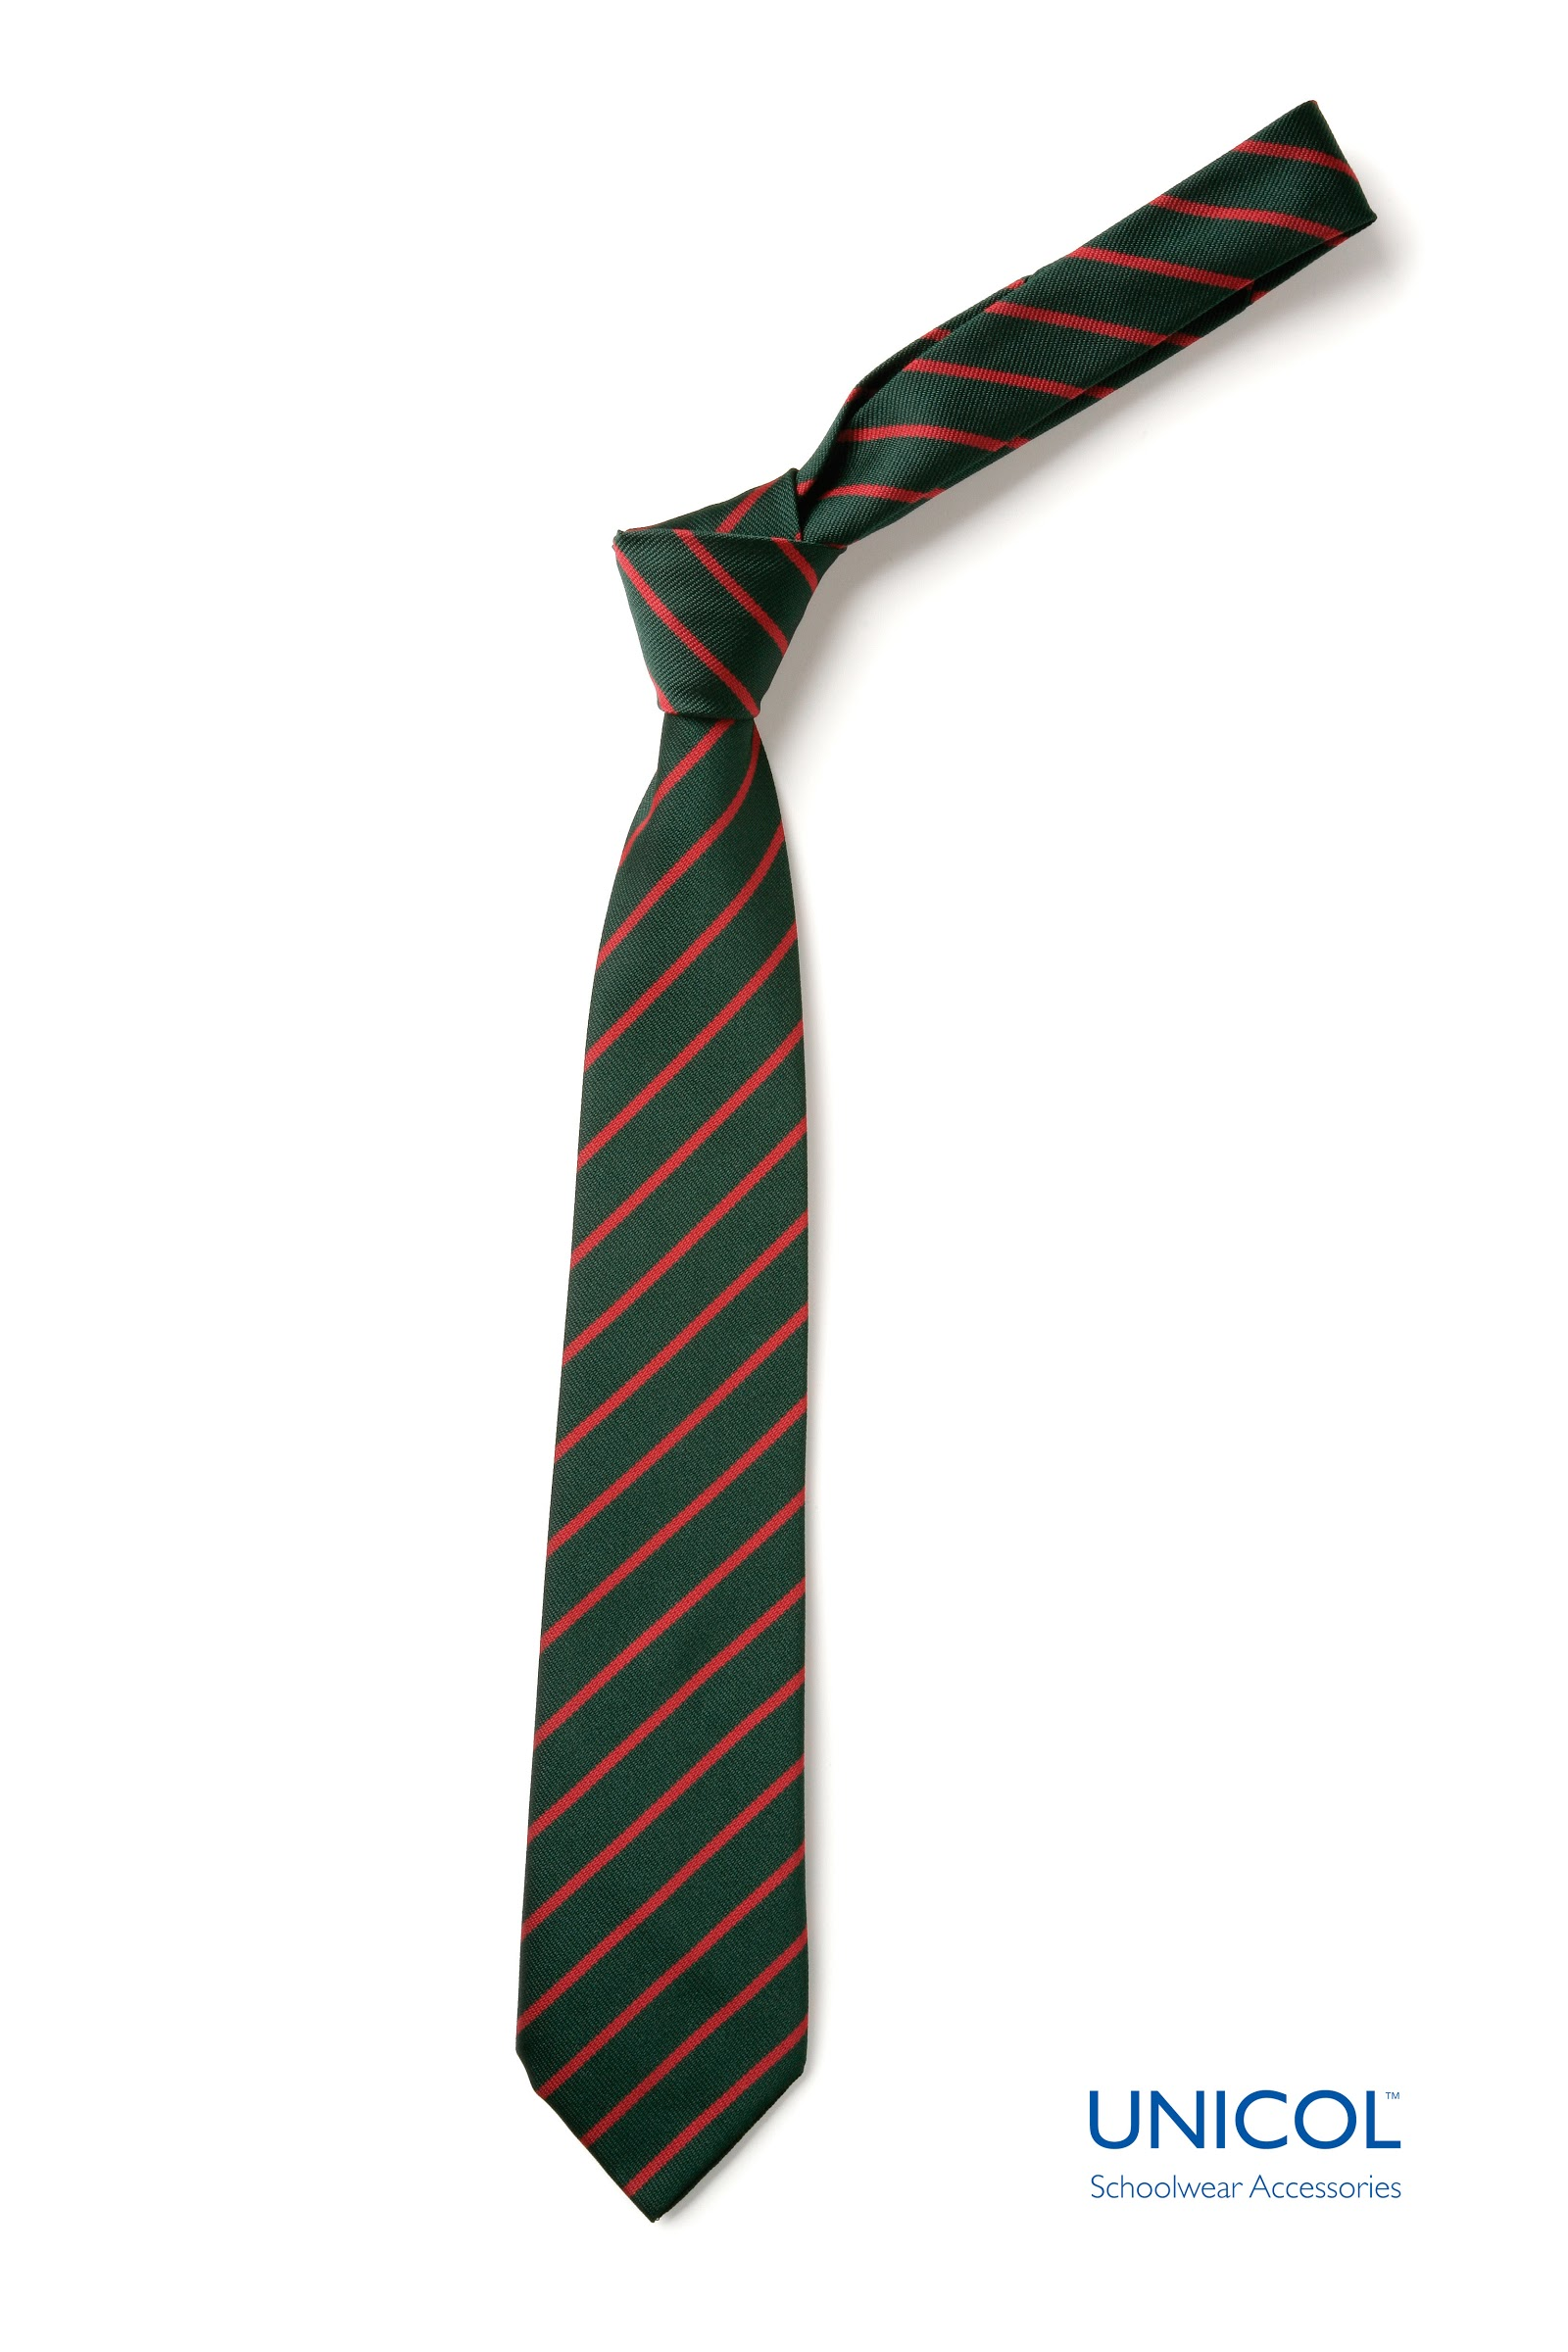 Uniform ties: Catering Company bow ties, neckties, and matching pocket squares. Cheap neckties made from stain resistant fabric: The perfect necktie for waiters and waitresses. Clip-on bow ties: Pretied for your convenience. Pre-tied neckties, no need for your employees to learn how to tie a tie.